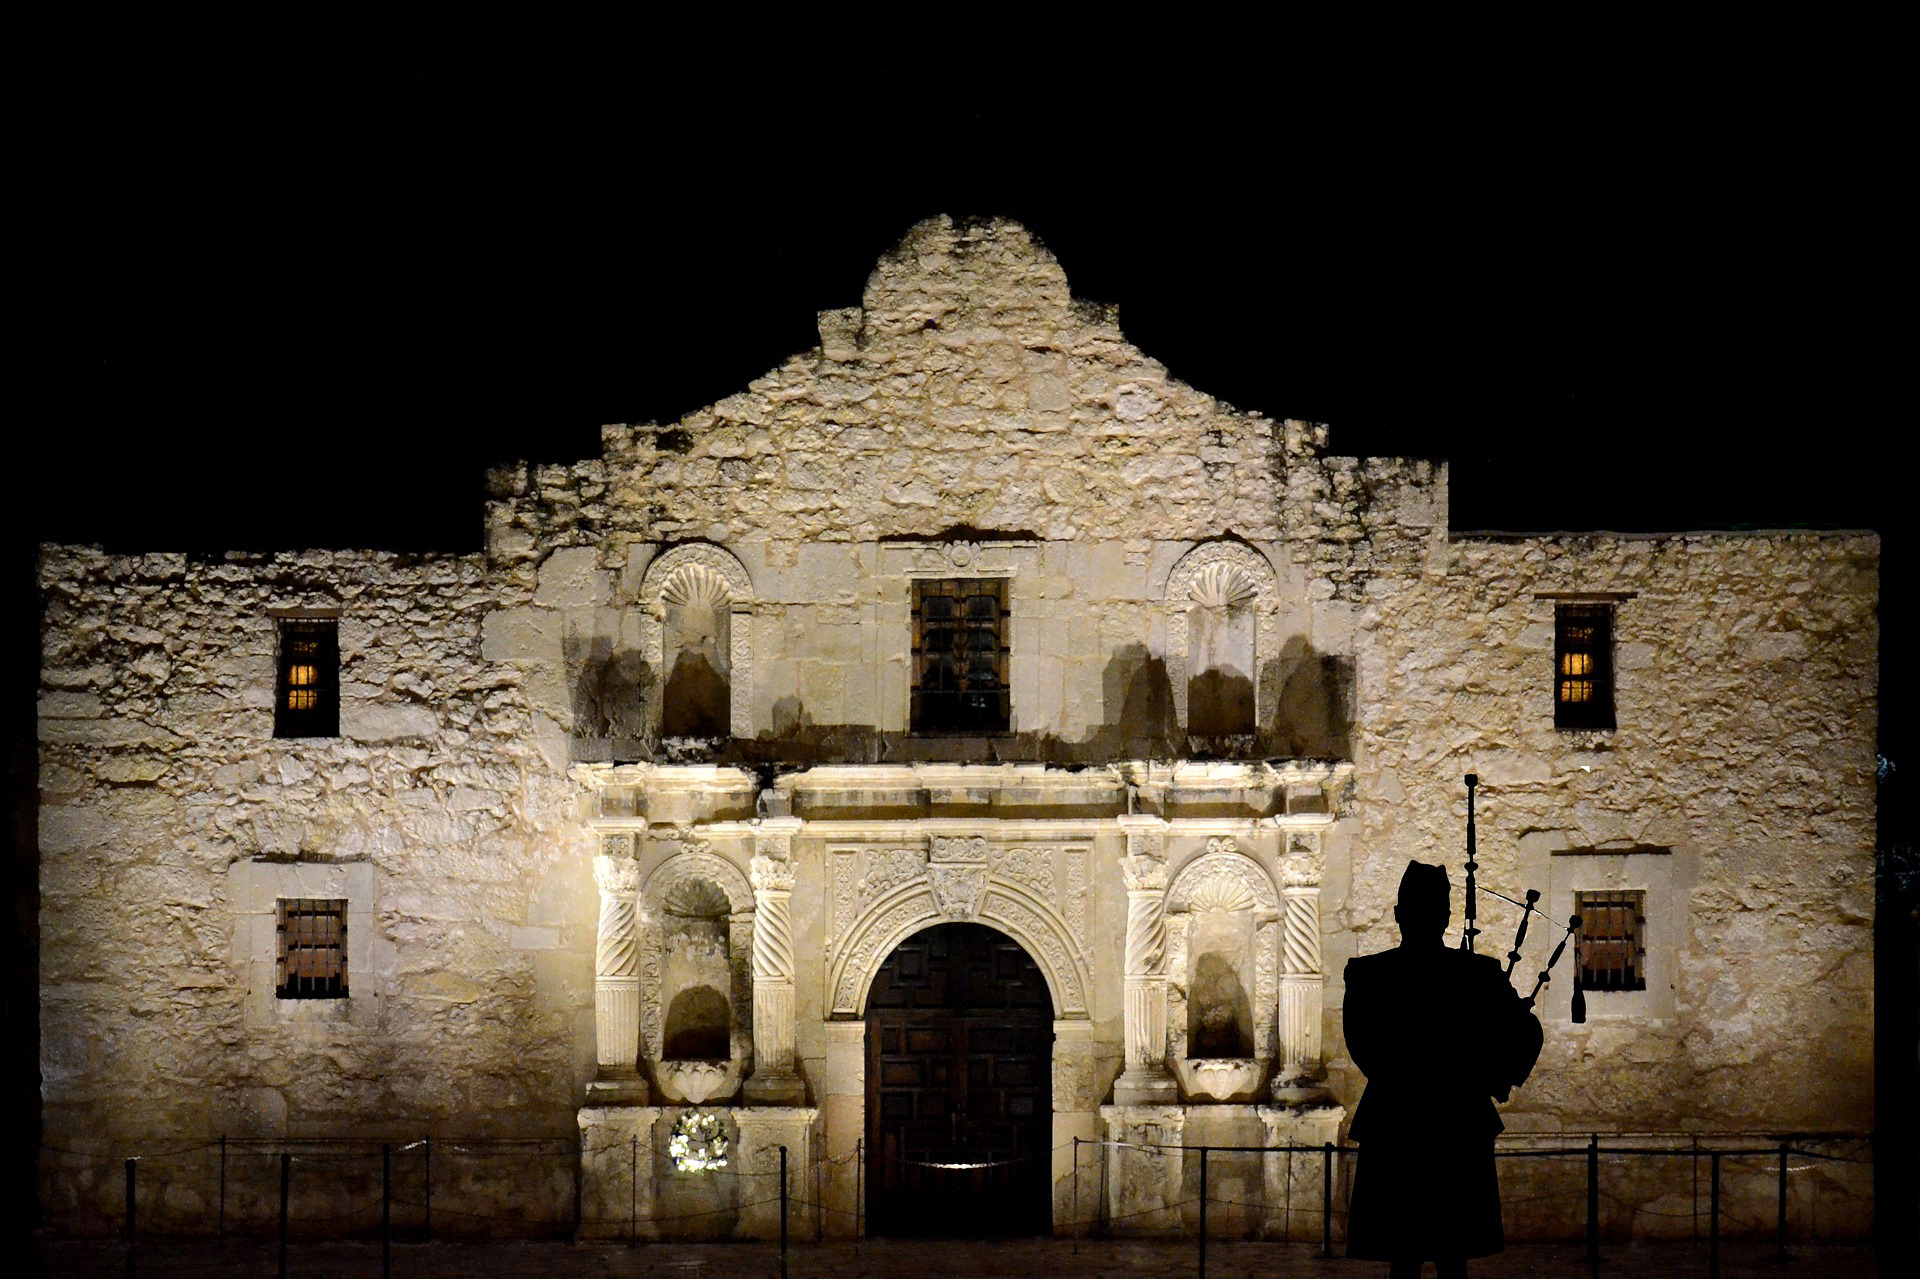 The Alamo is the most visited tourist destination in Texas with more than 2.5 million visitors annually.    This modern image of a piper at the Alamo pays tribute to the contribution of Scots at the battle.